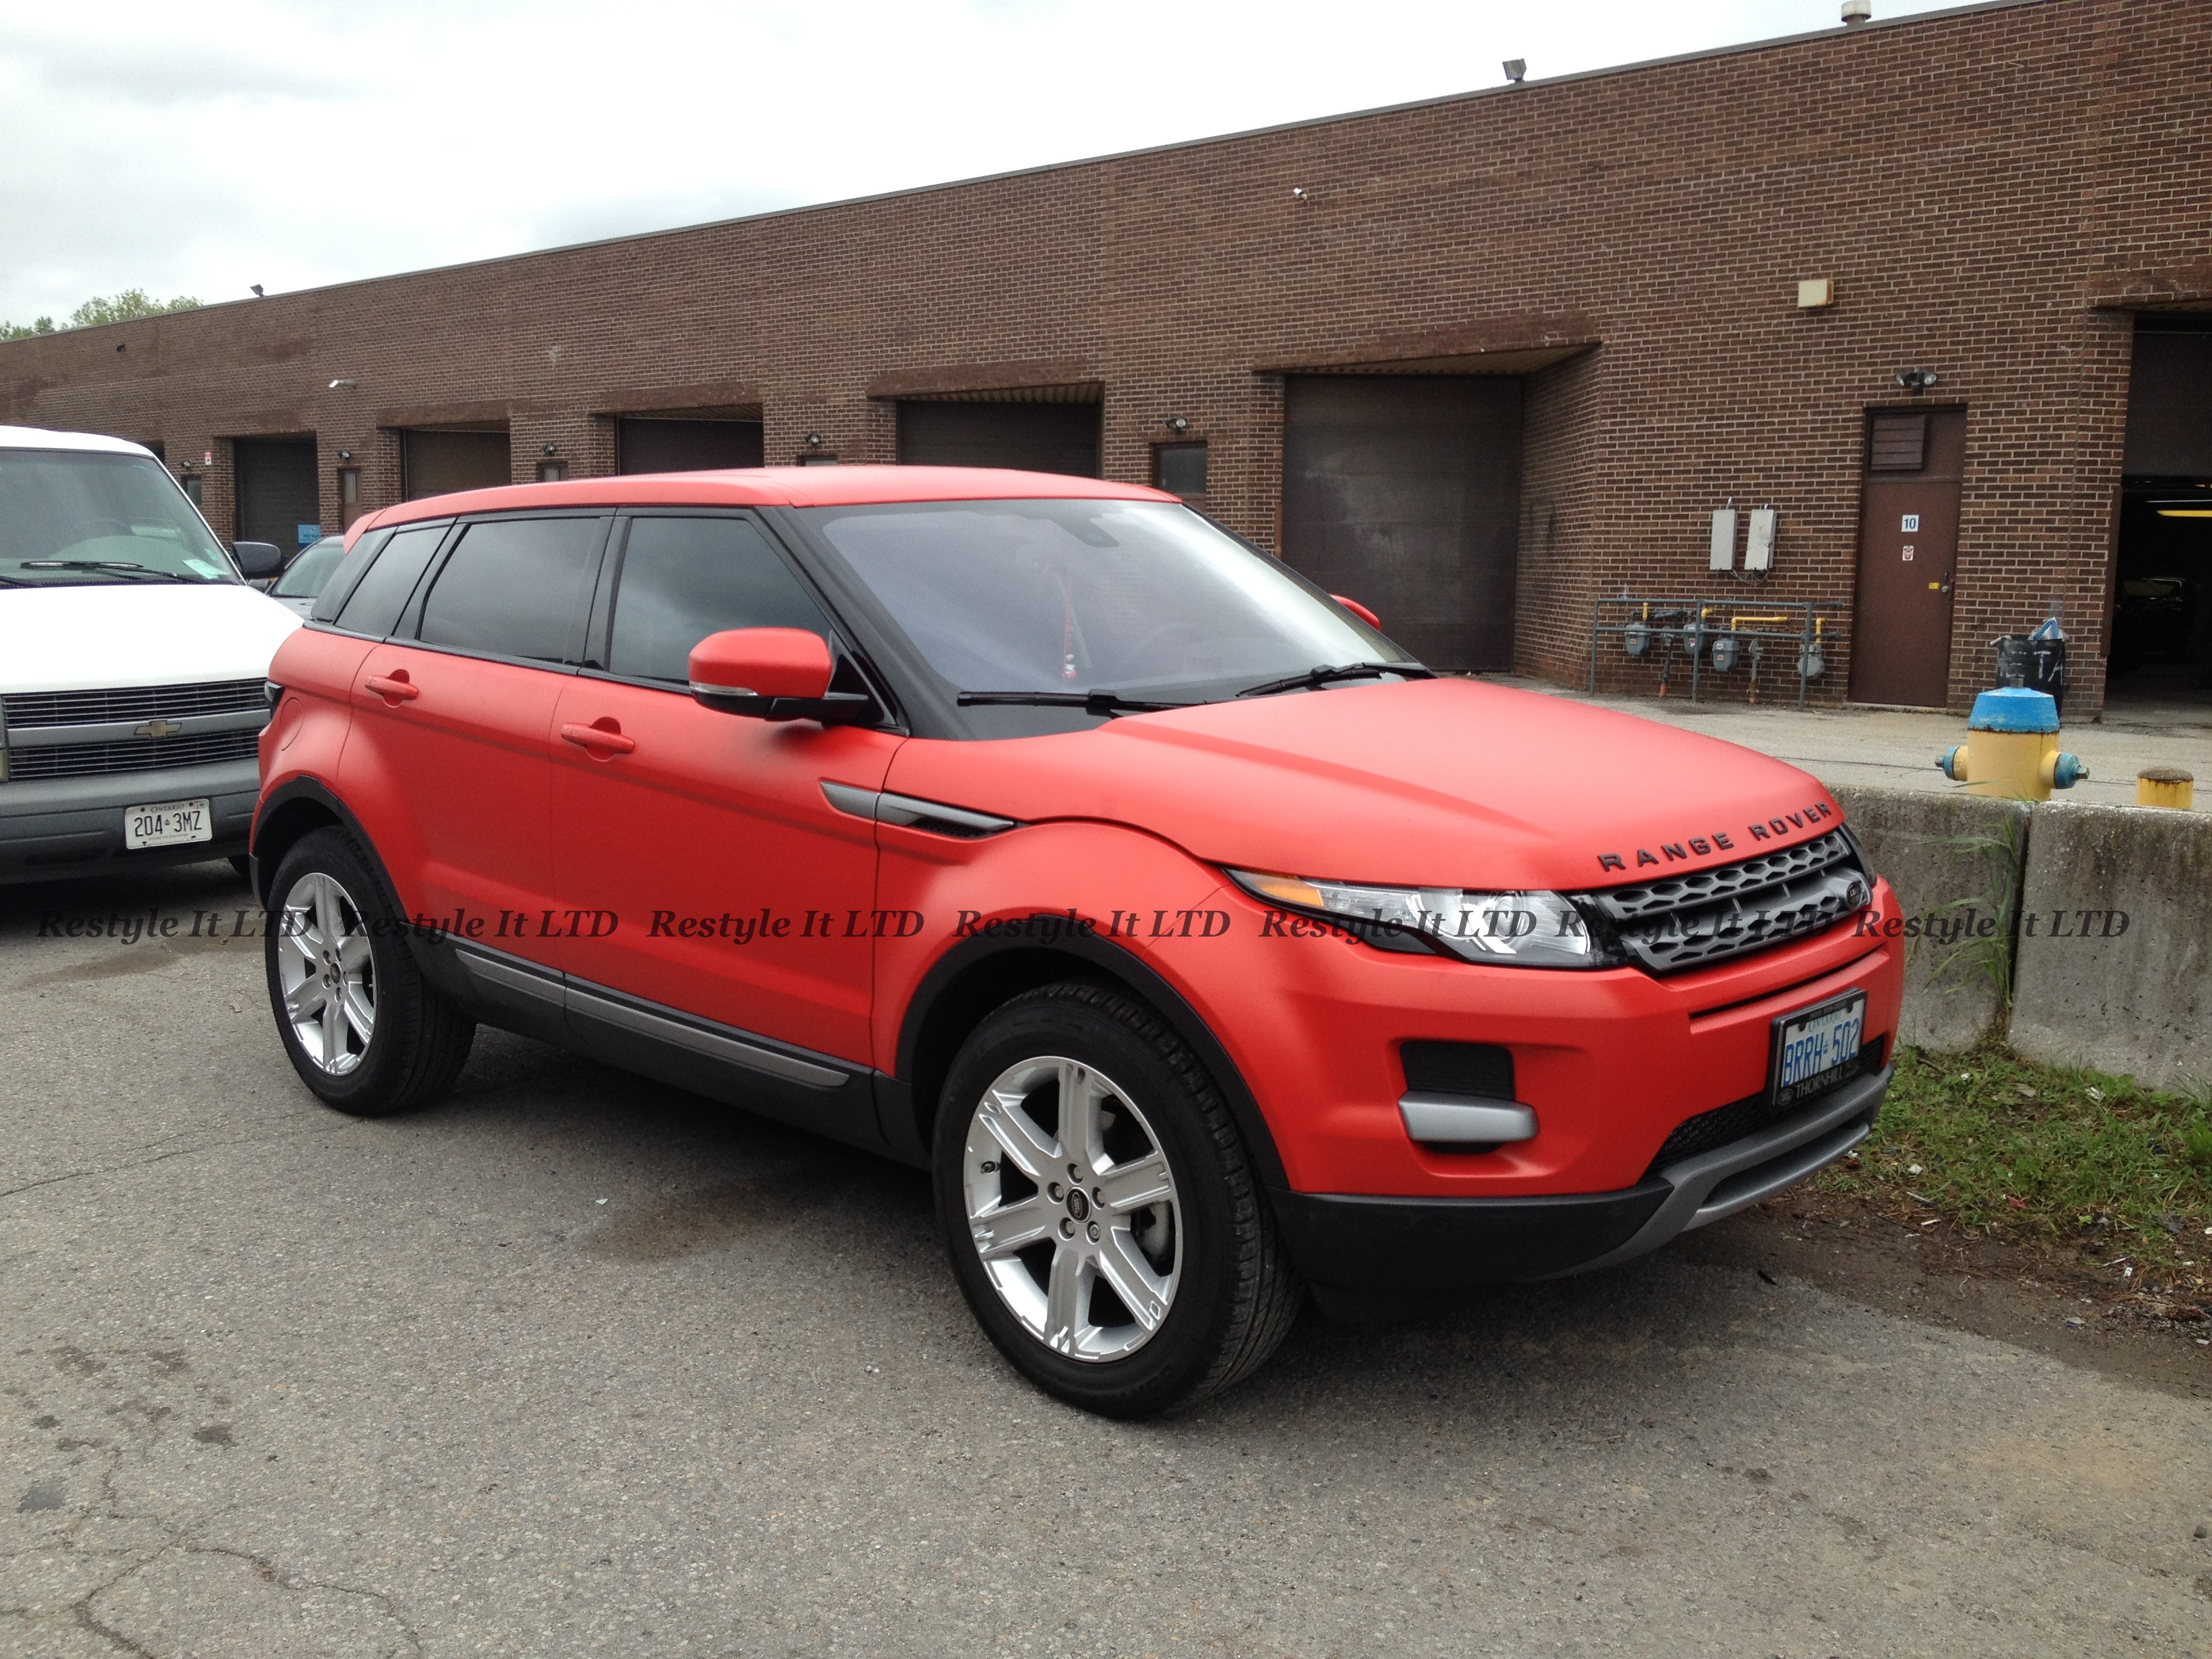 Matte Cardinal Red Range Rover Evoque Vehicle